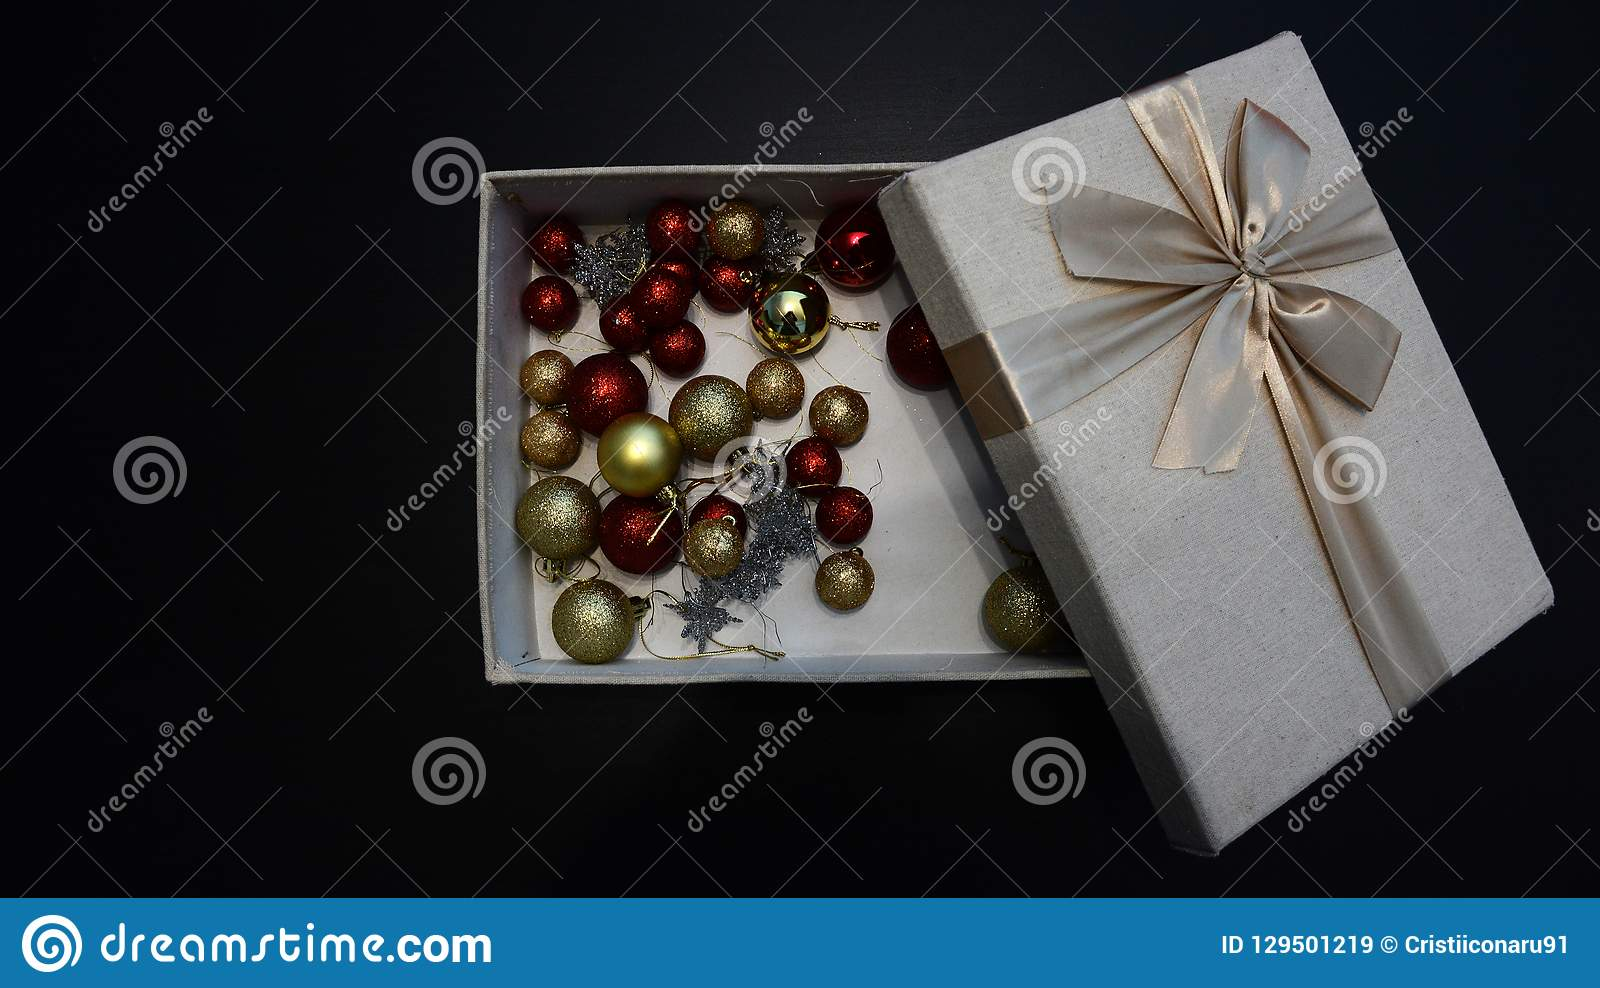 Gift box with Christmas globes inside against dark background